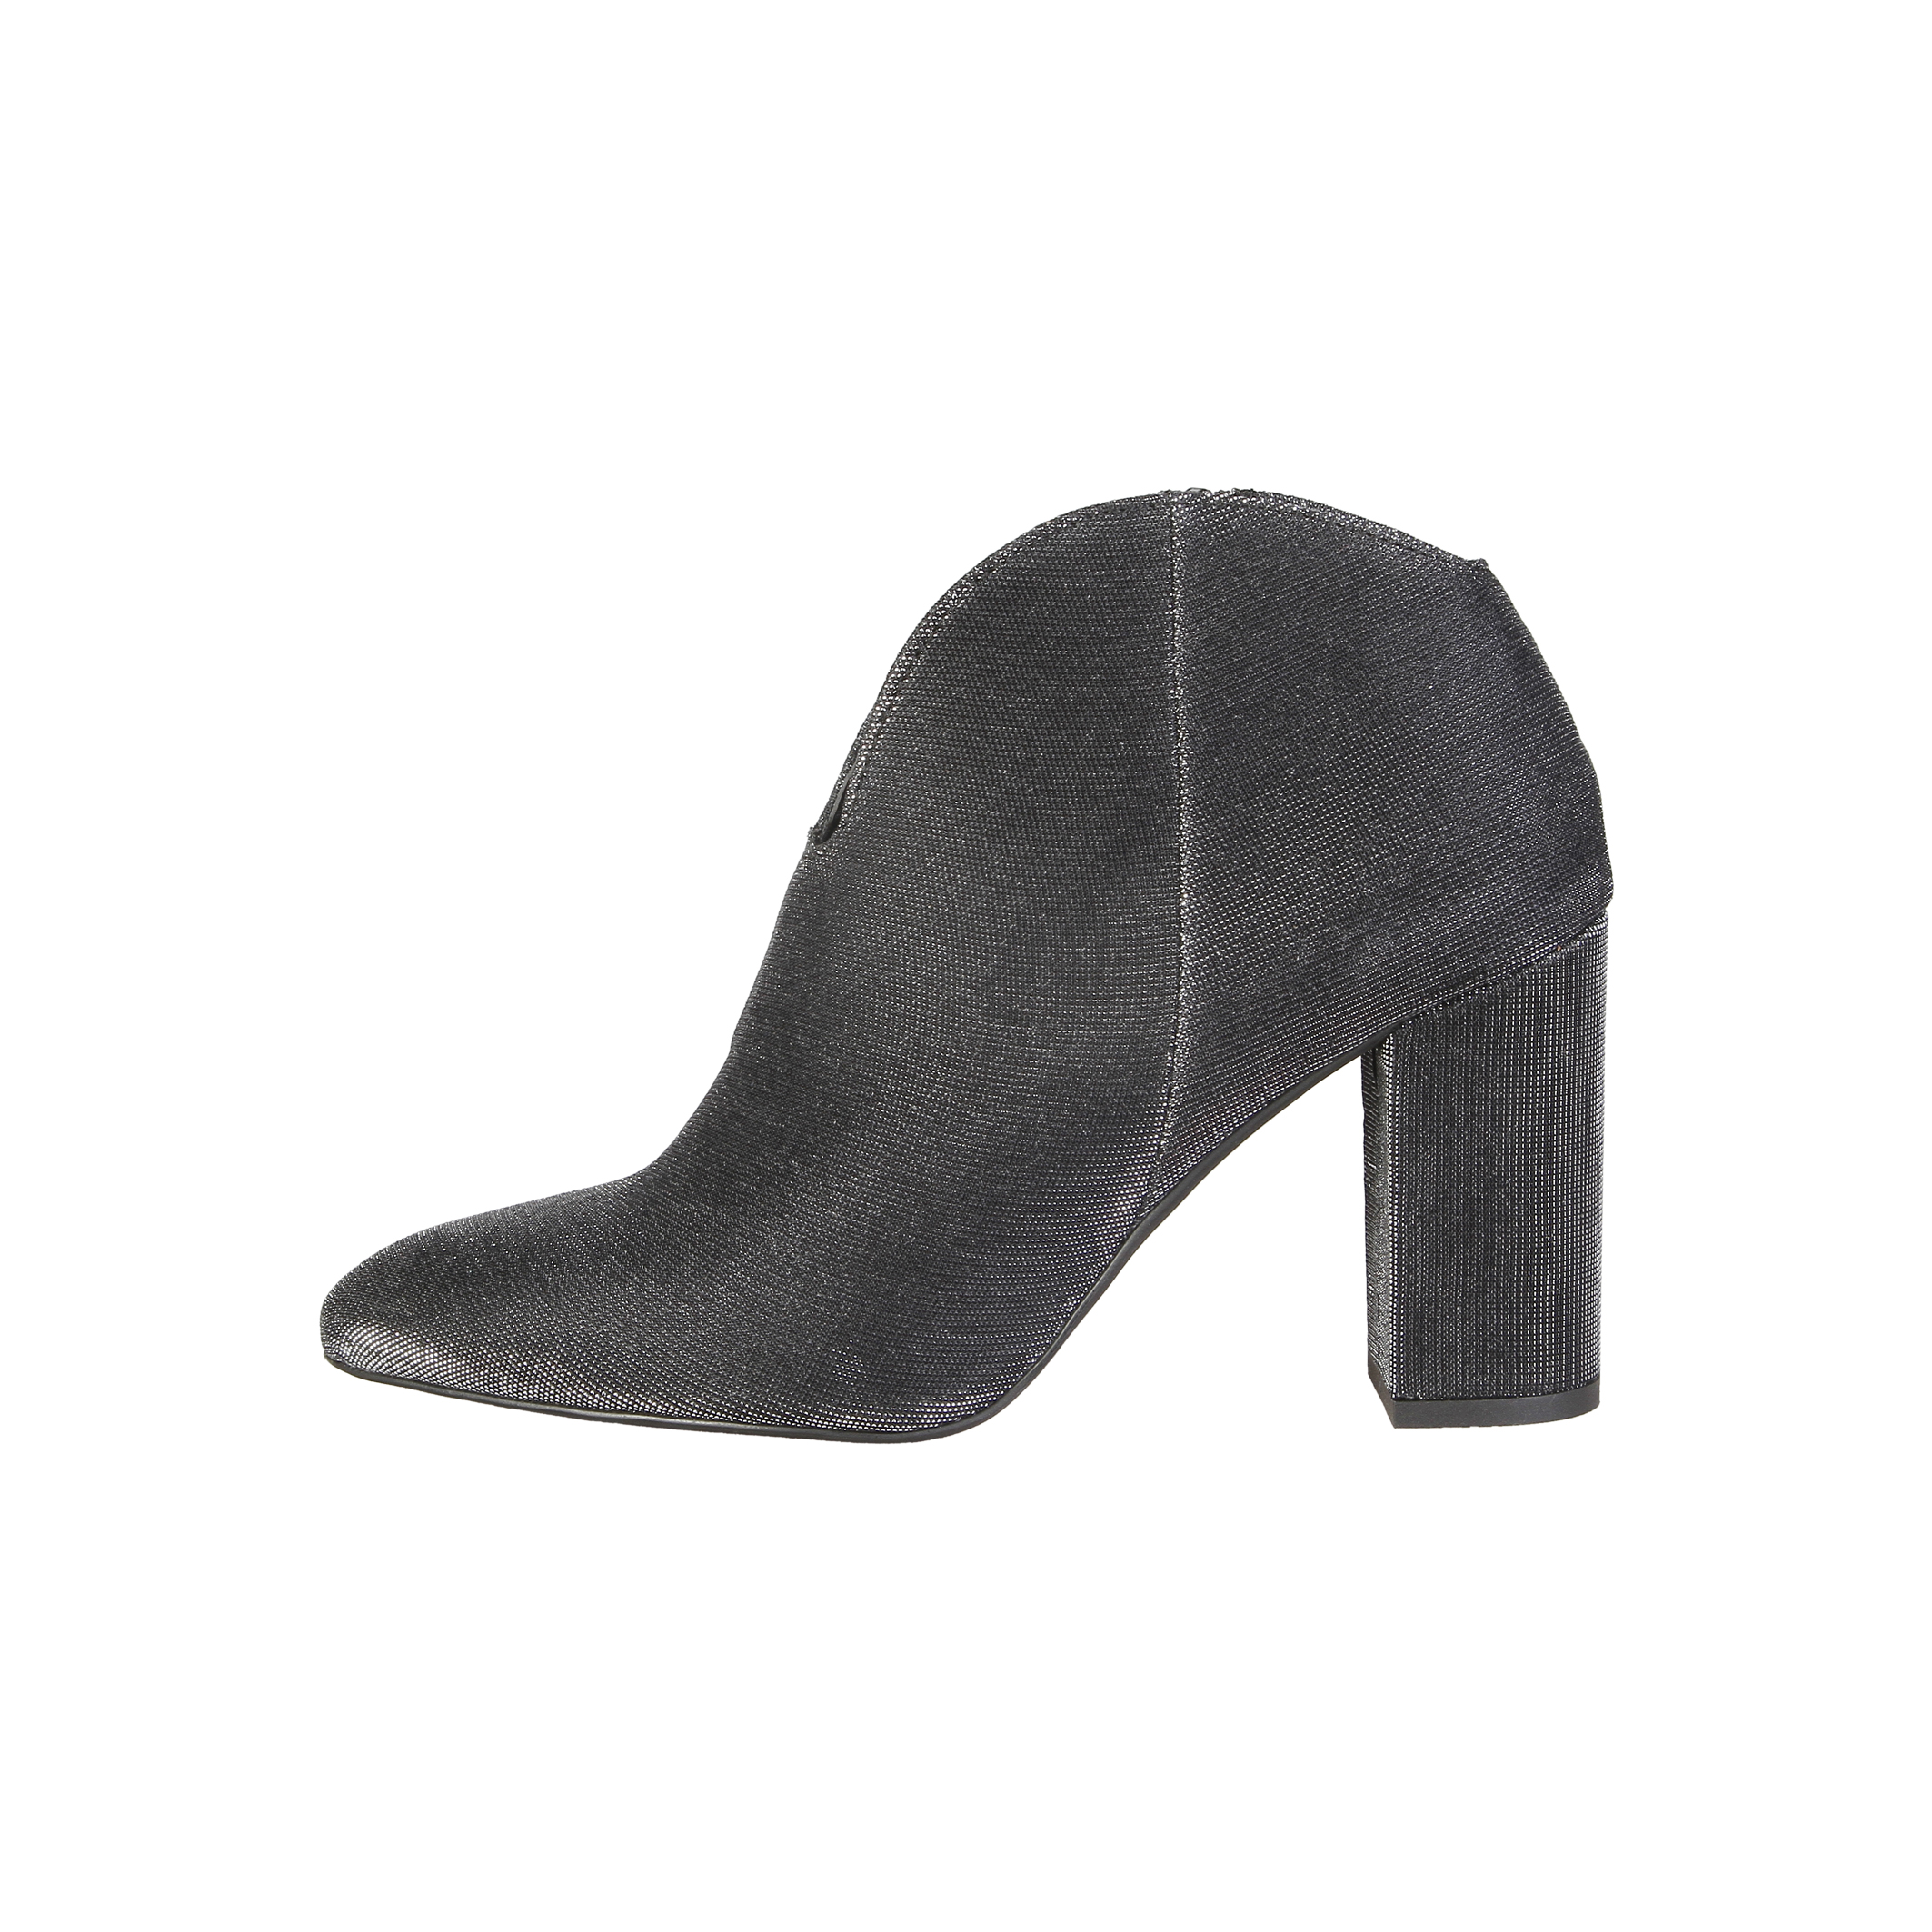 Chaussures Made In Italia Femme 36,37,38,39,40,41